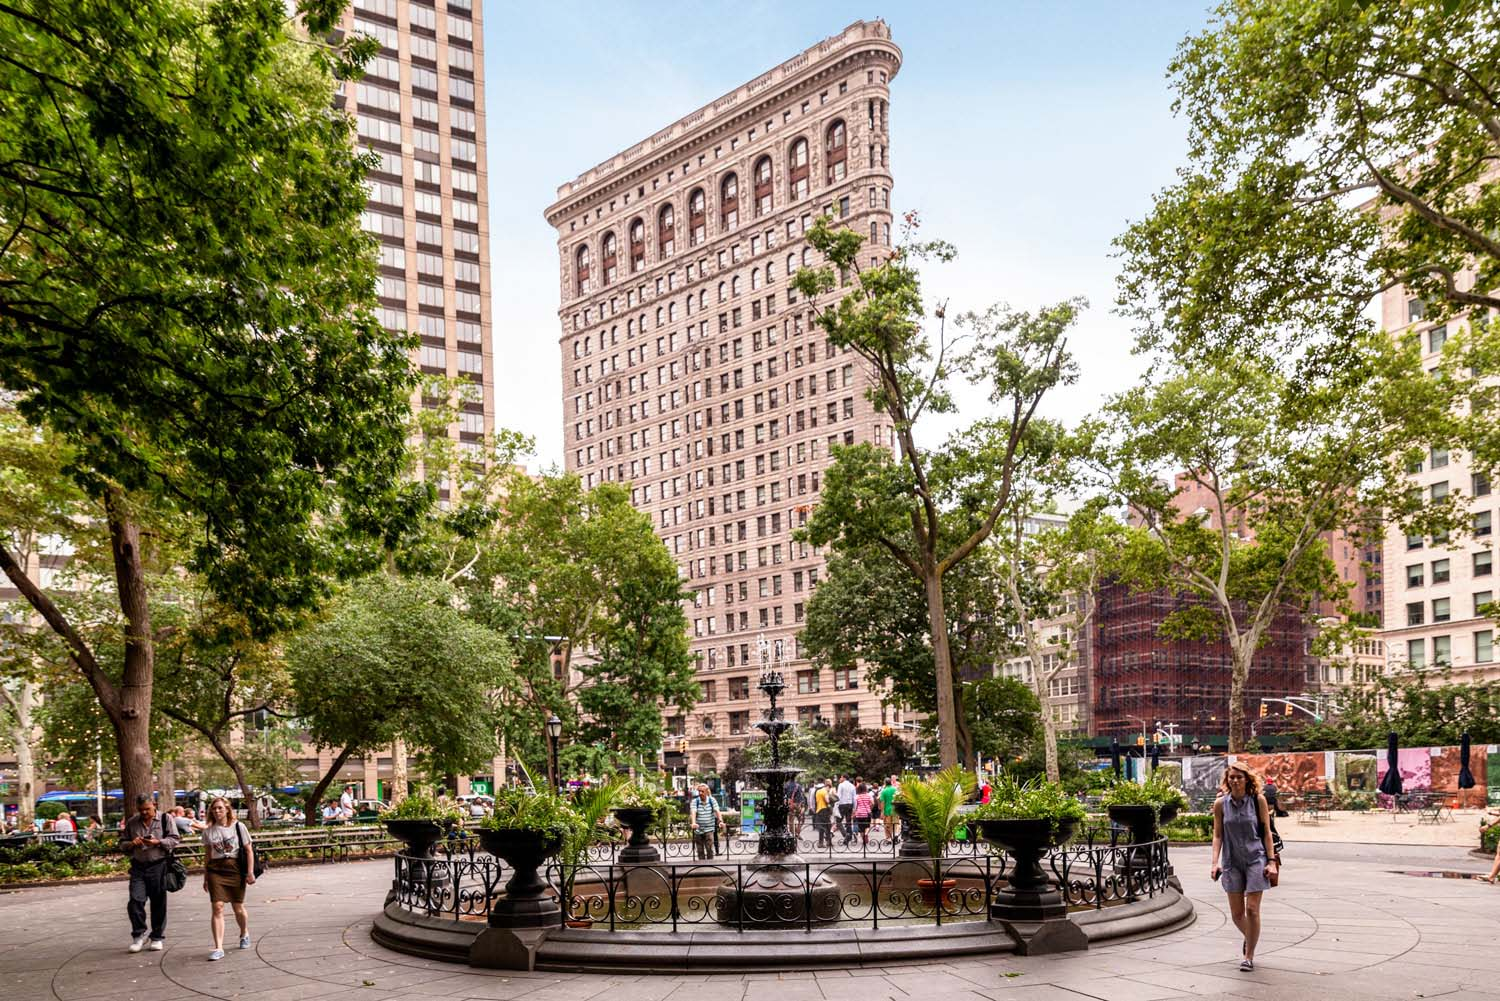 New York city park with fountain during the day with people walking and the flatiron building behind